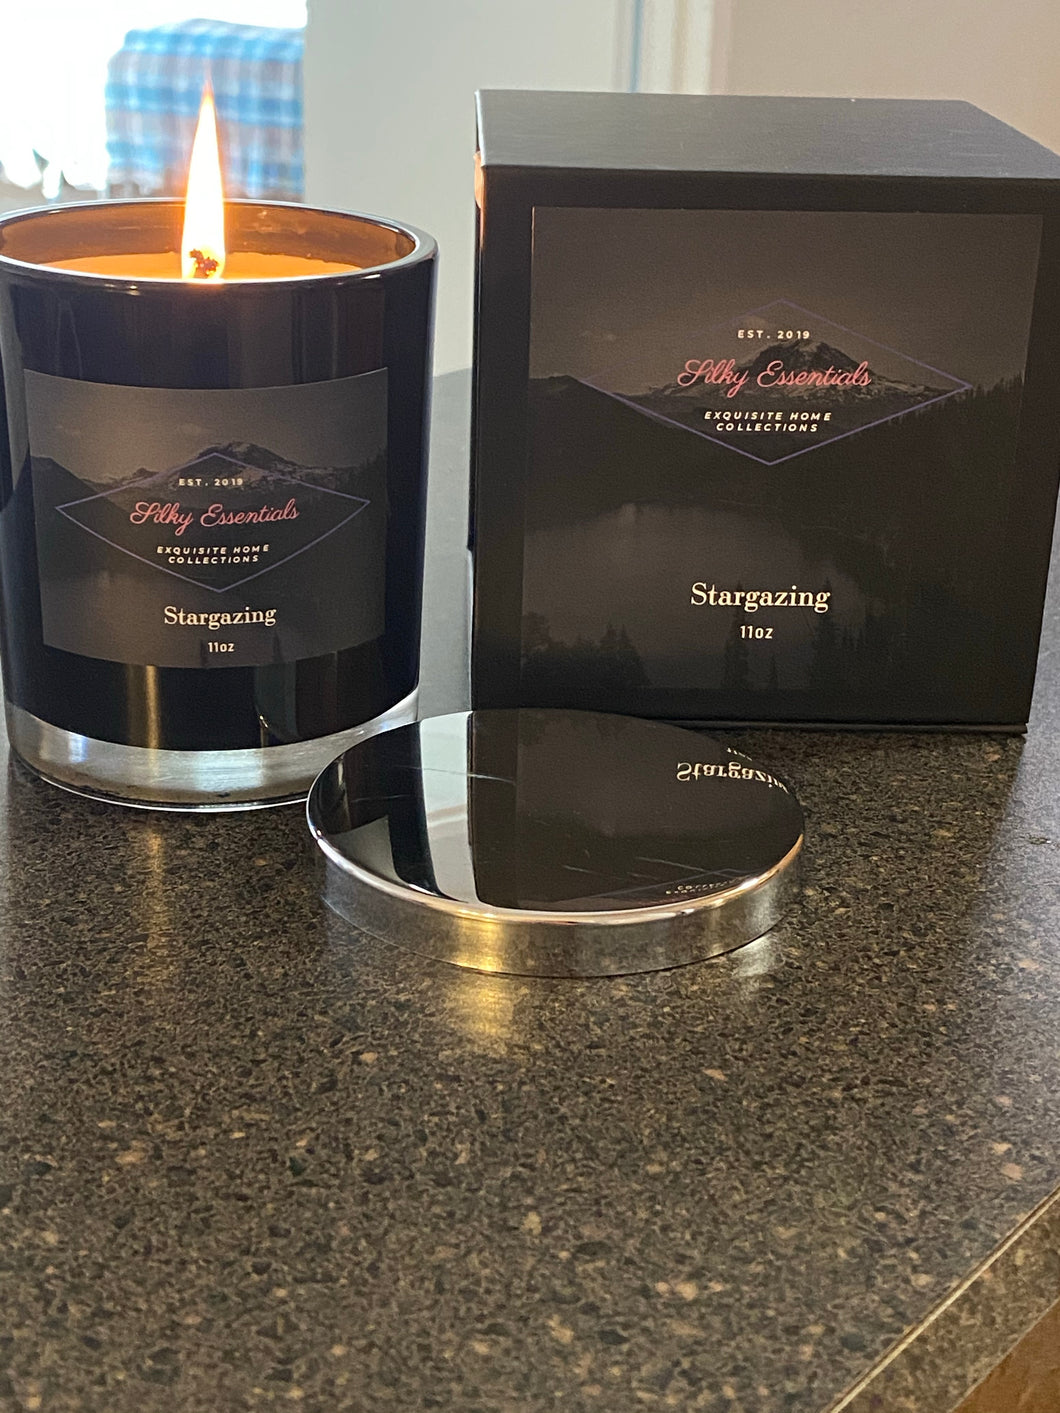 Silky Essentials Candles Buy 2 for $34.99